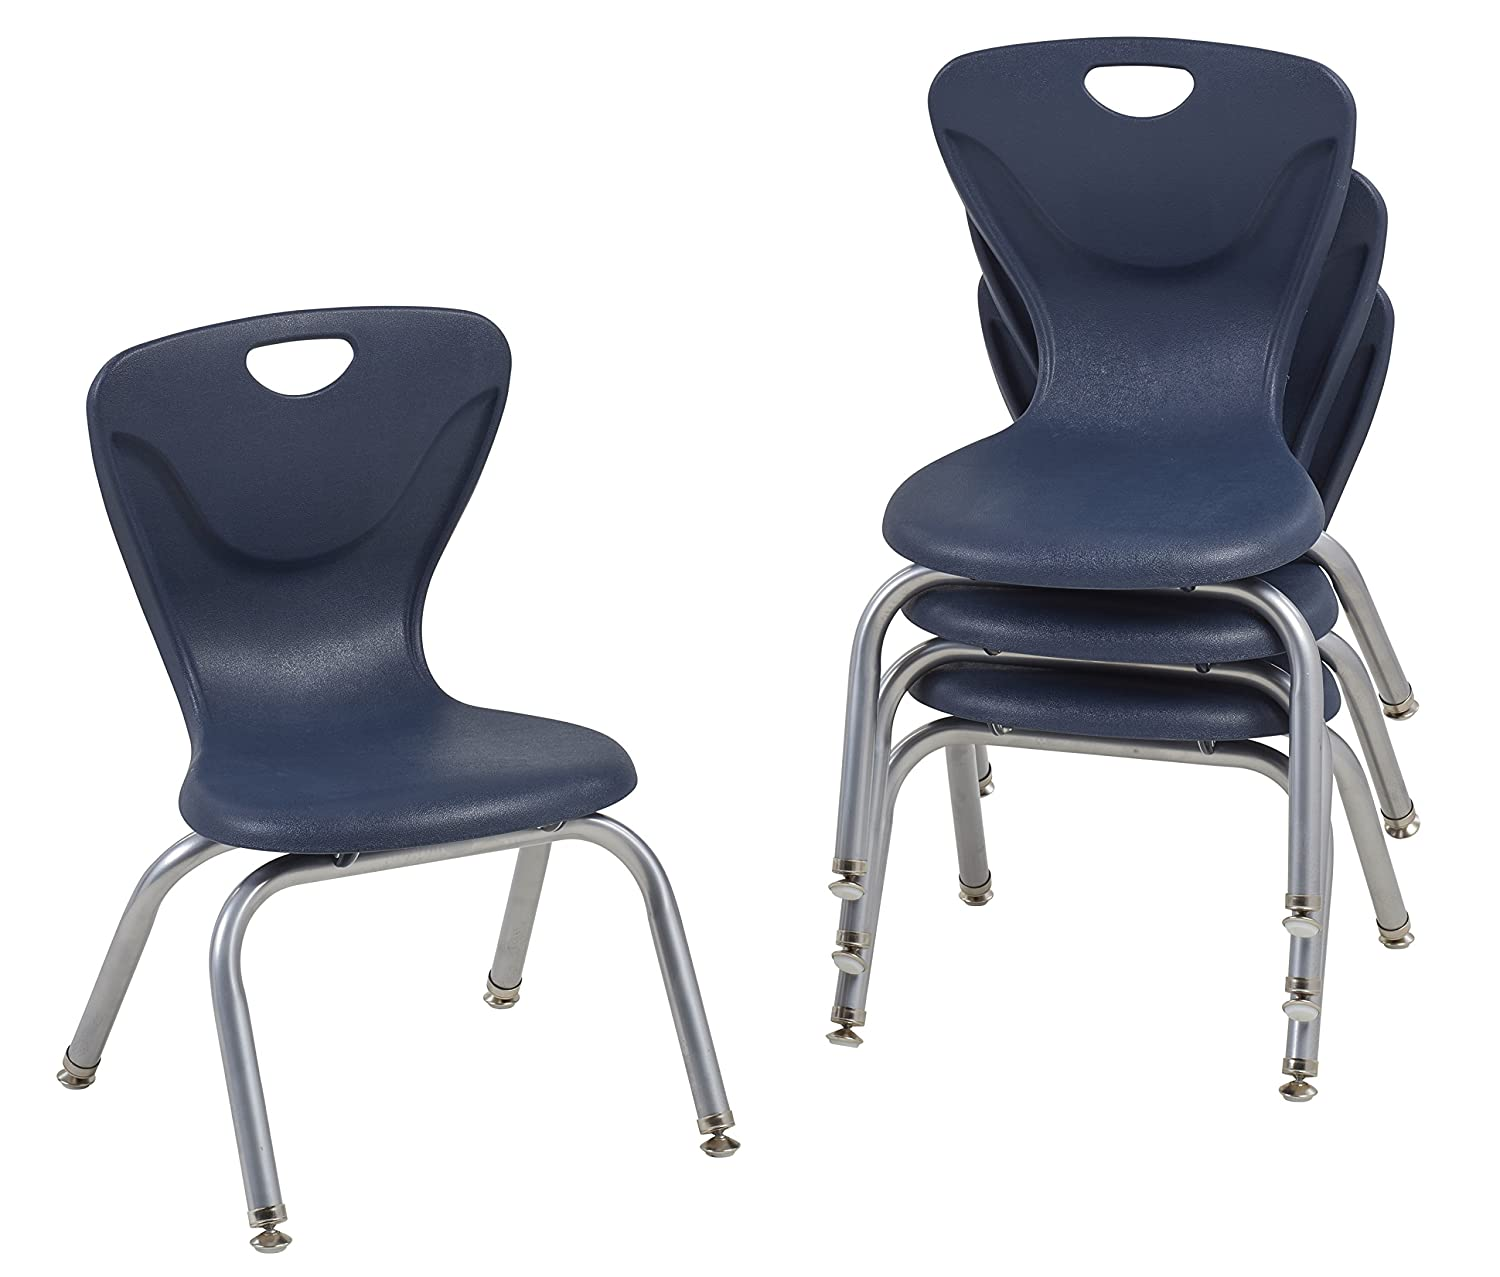 "FDP 12"" Contour School Stacking Student Chair, Ergonomic Molded Seat Shell with Chromed Steel Frame and Swivel Leg Glides; for in-Home Learning or Classroom - Navy (4-Pack)"